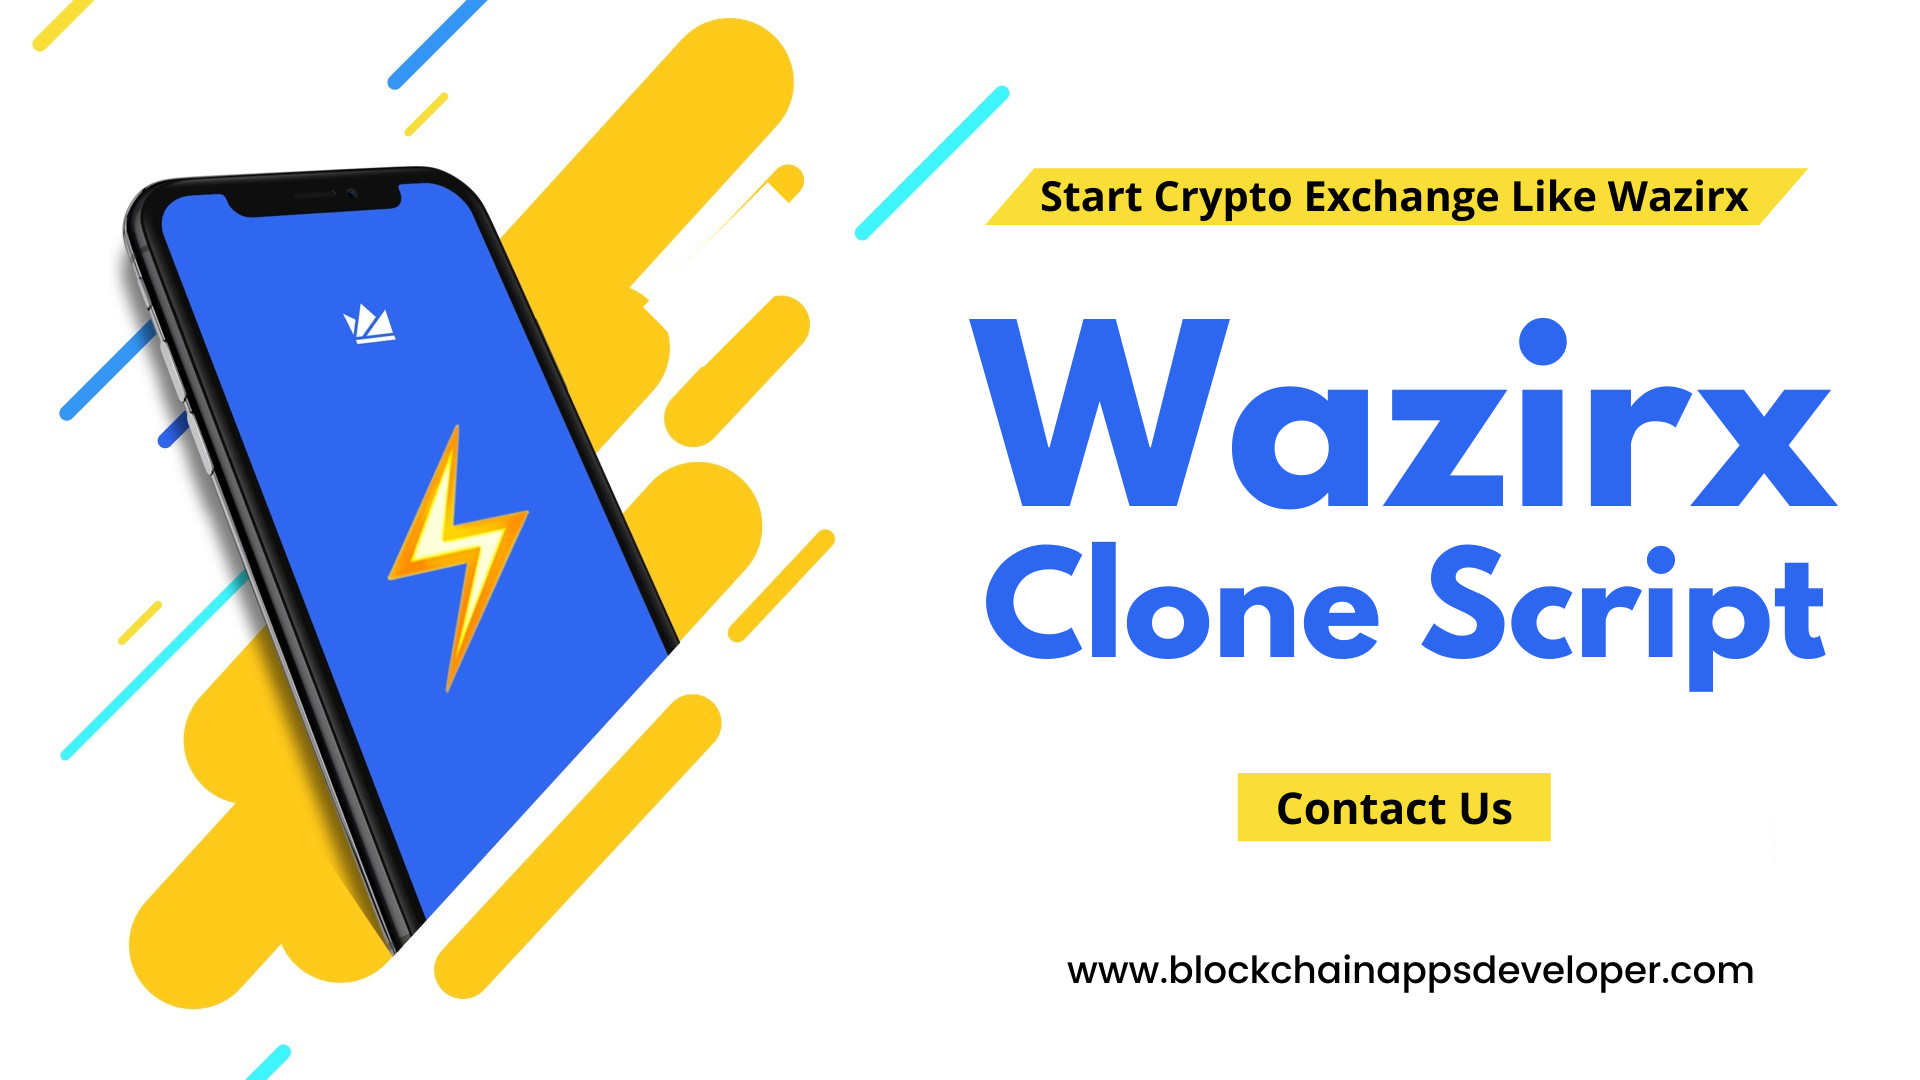 WazirX Clone Script To Start Cryptocurrency Exchange Similar To WazirX